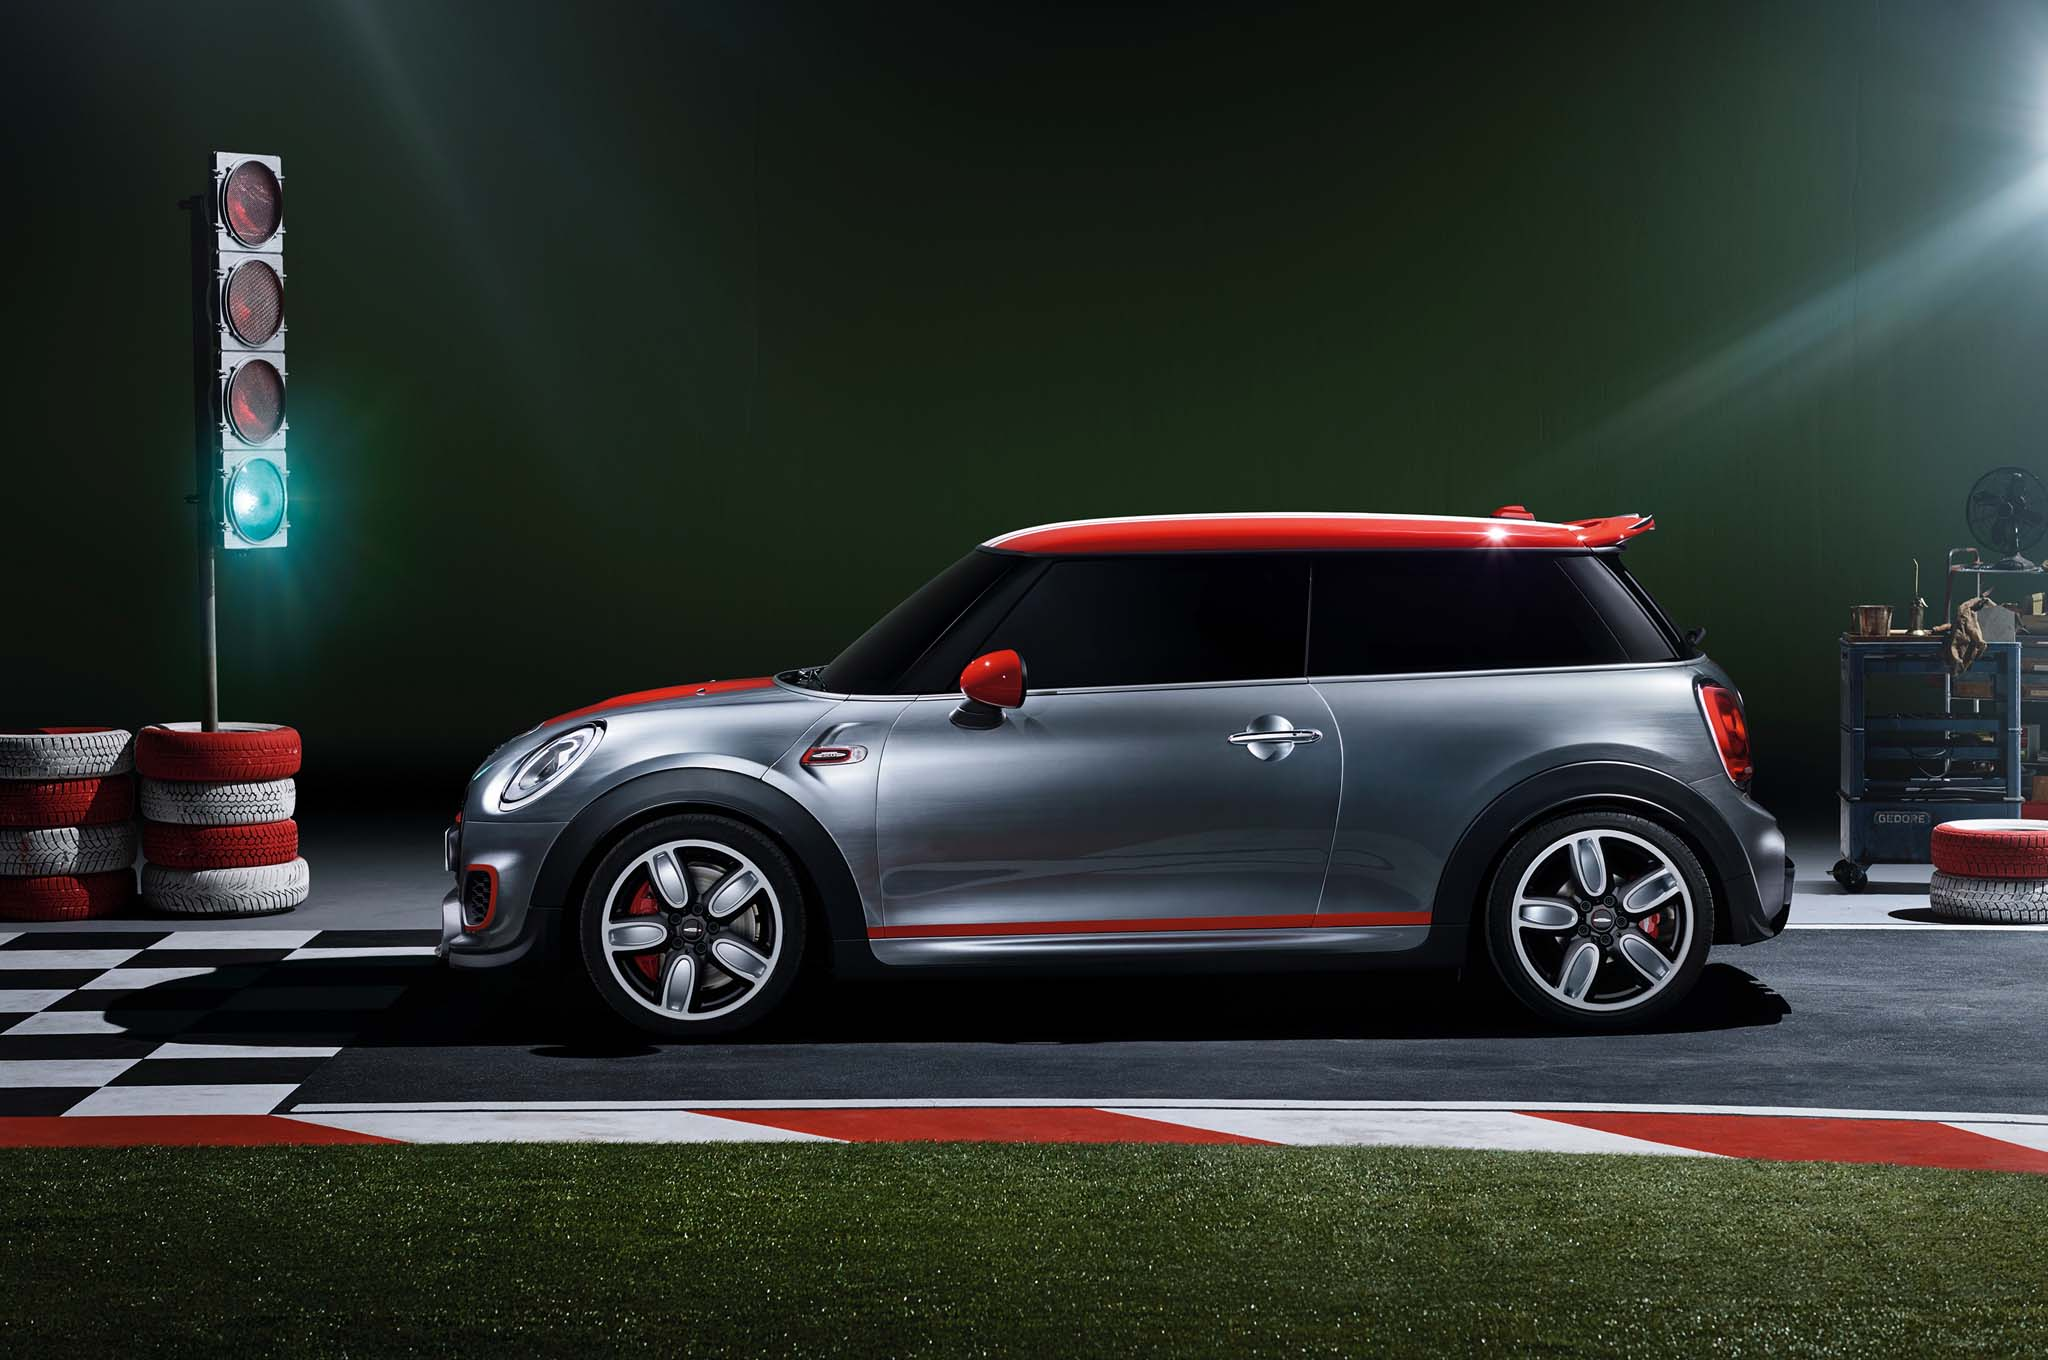 report: 2015 mini cooper jcw to get 231 hp from new engine